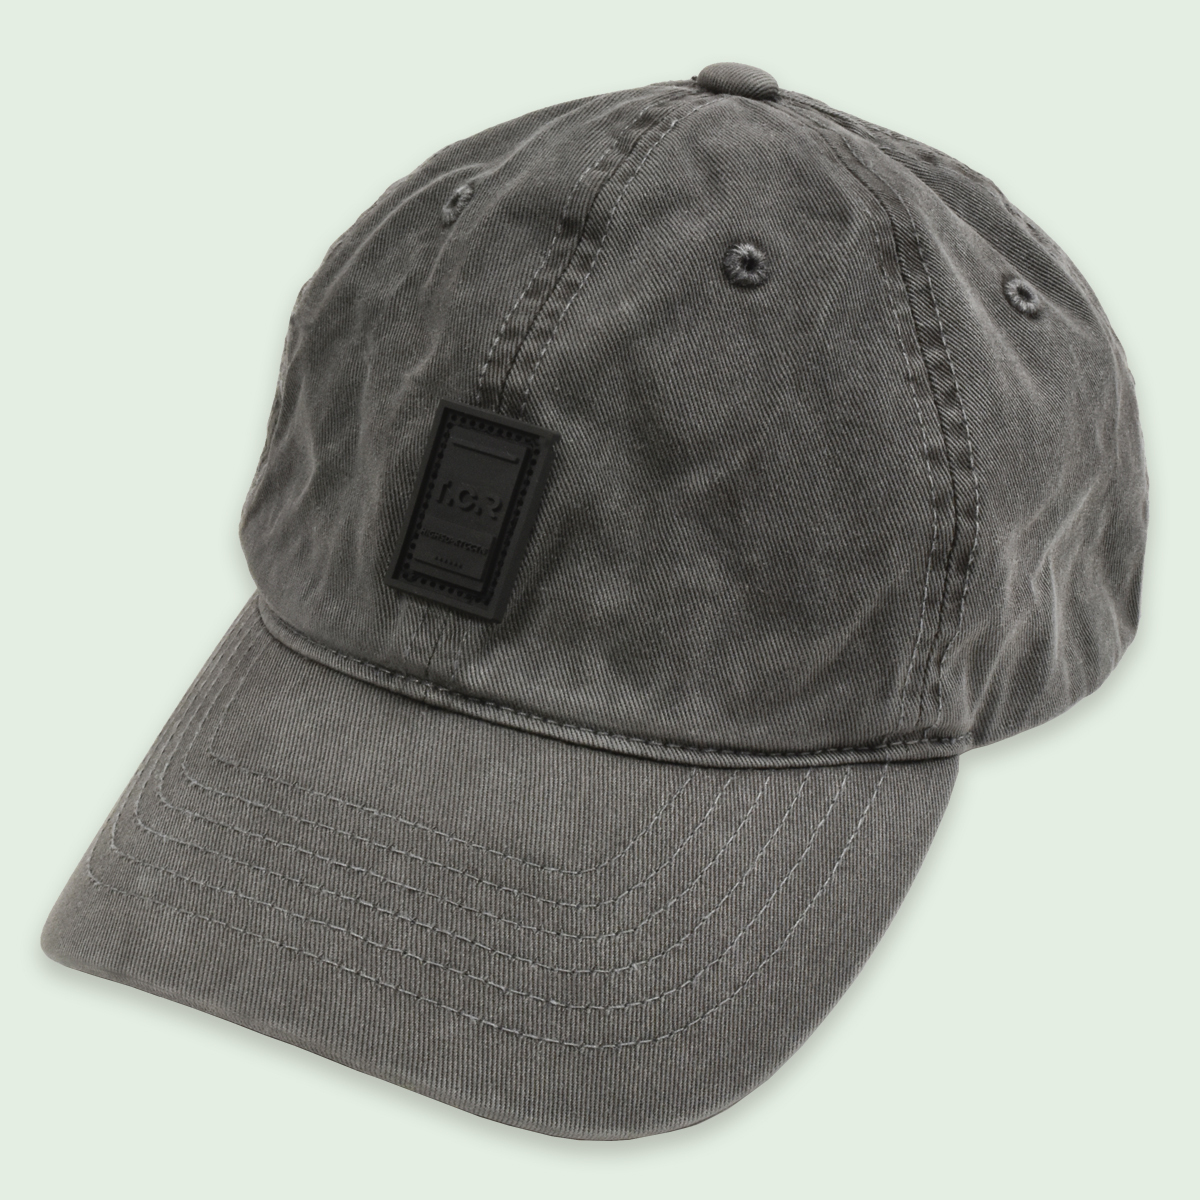 RUBBER LOGO WASHED CAP - GRAY